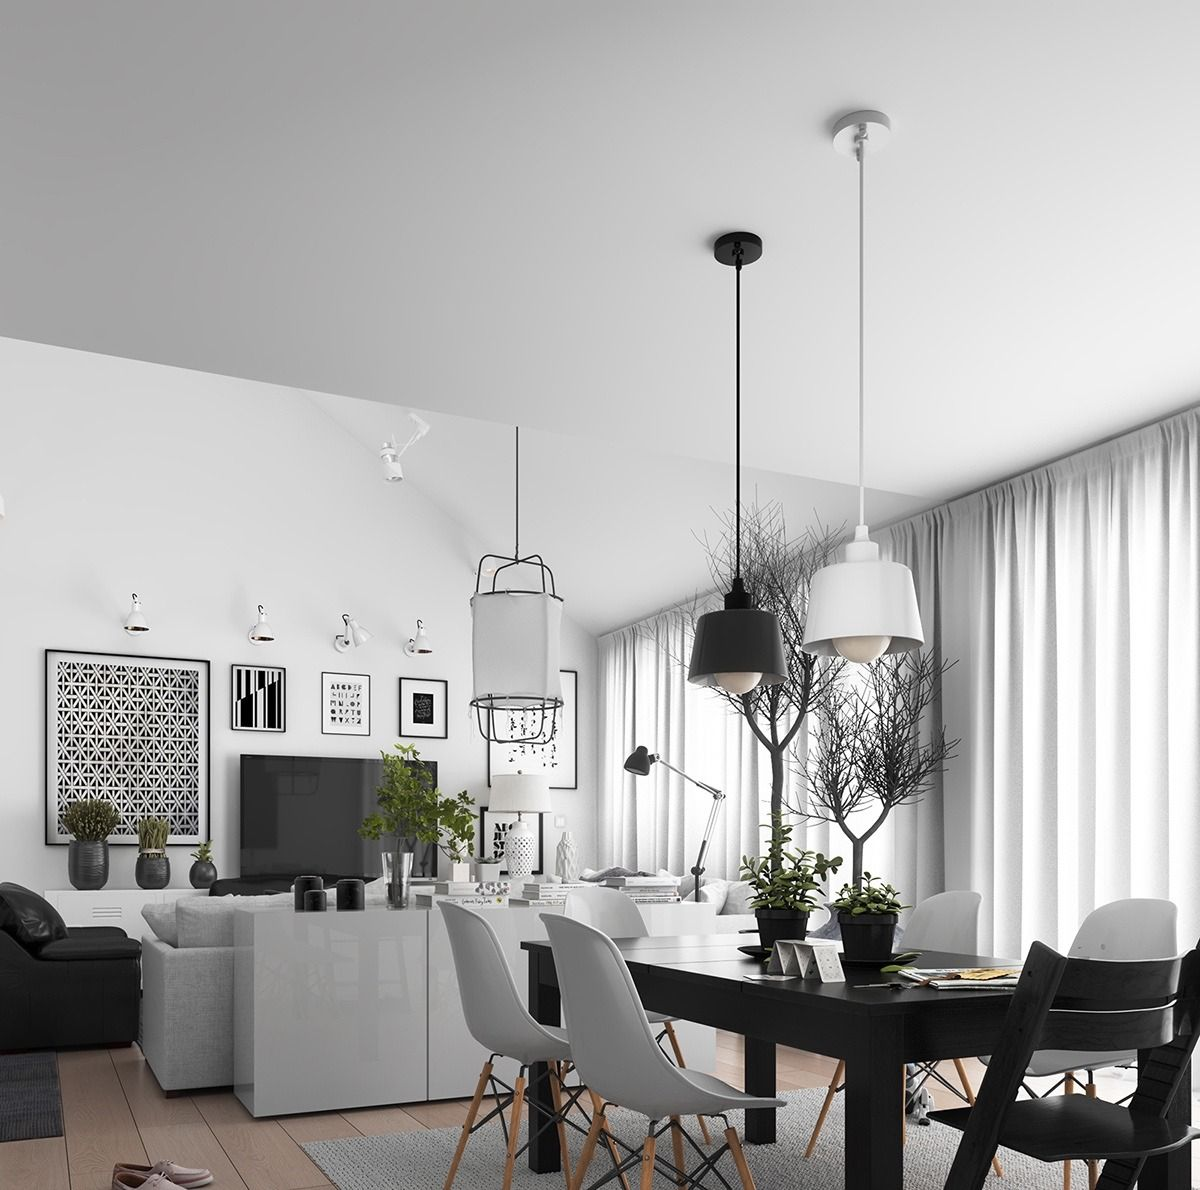 Living Room And Dining Room Together: 5 Simple And Achievable Scandinavian Apartment Designs